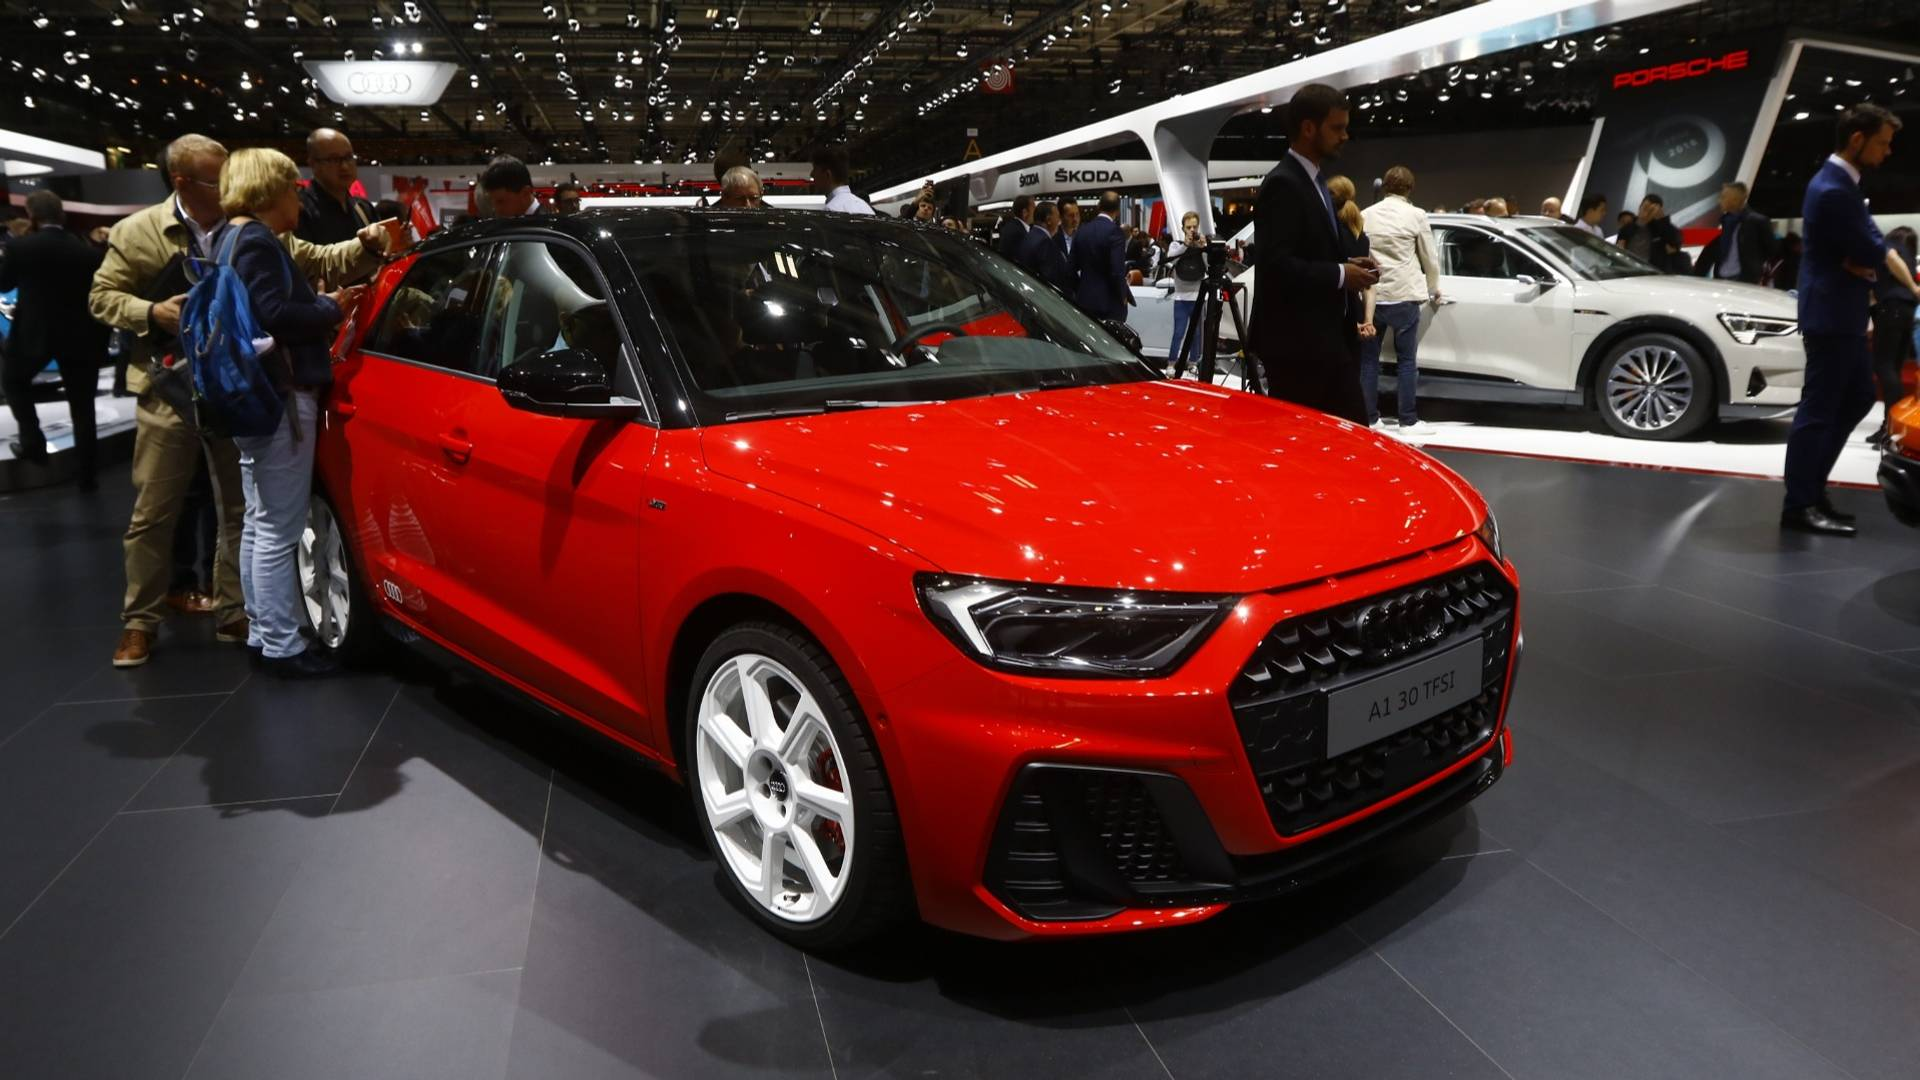 2019 Audi A1 Looks All Grown Up In Paris